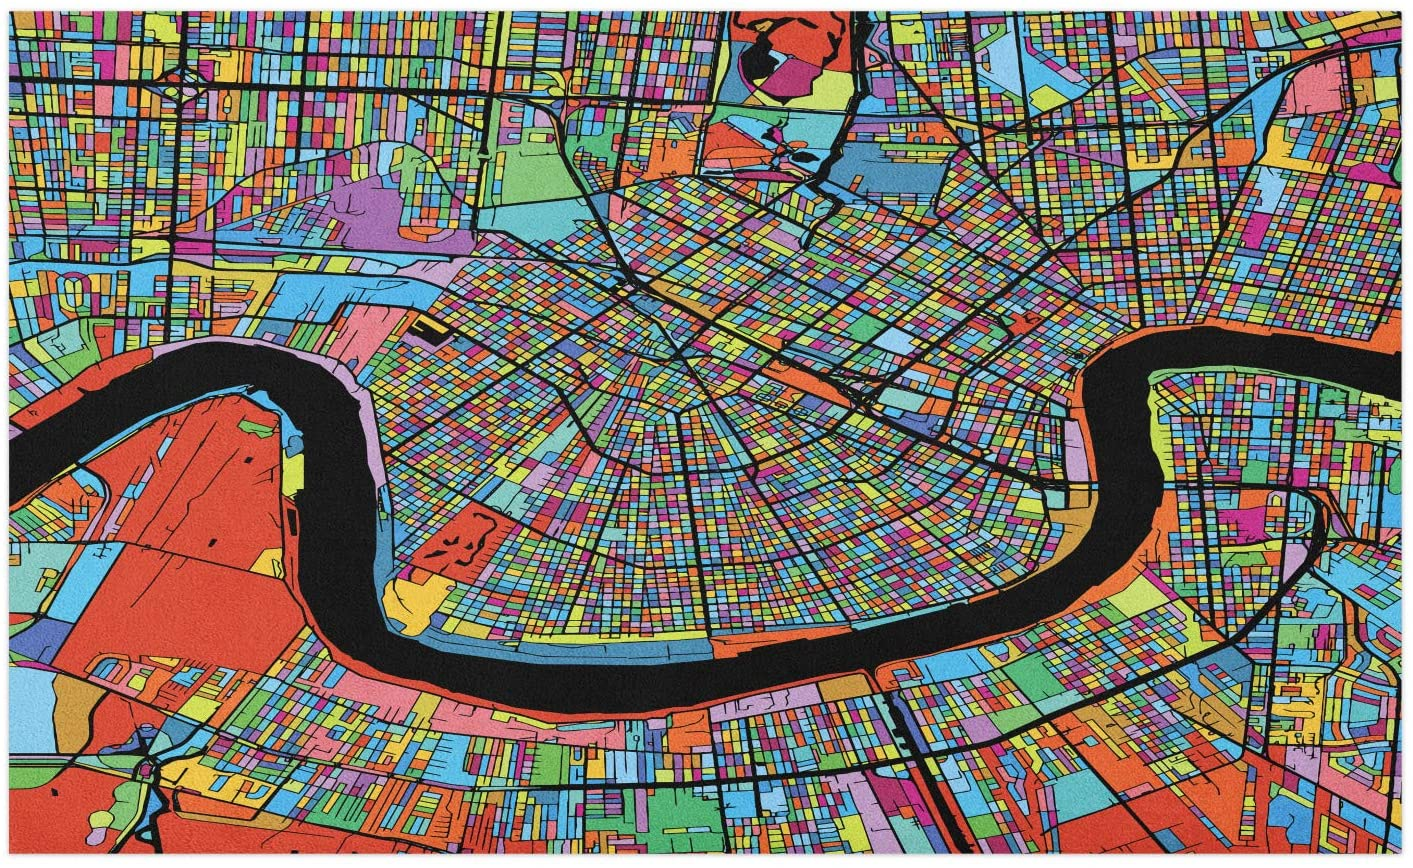 Ambesonne New Orleans Doormat, Colorful Map of City with Mississippi River Districts and Highways New Orleans, Decorative Polyester Floor Mat with Non-Skid Backing, 30